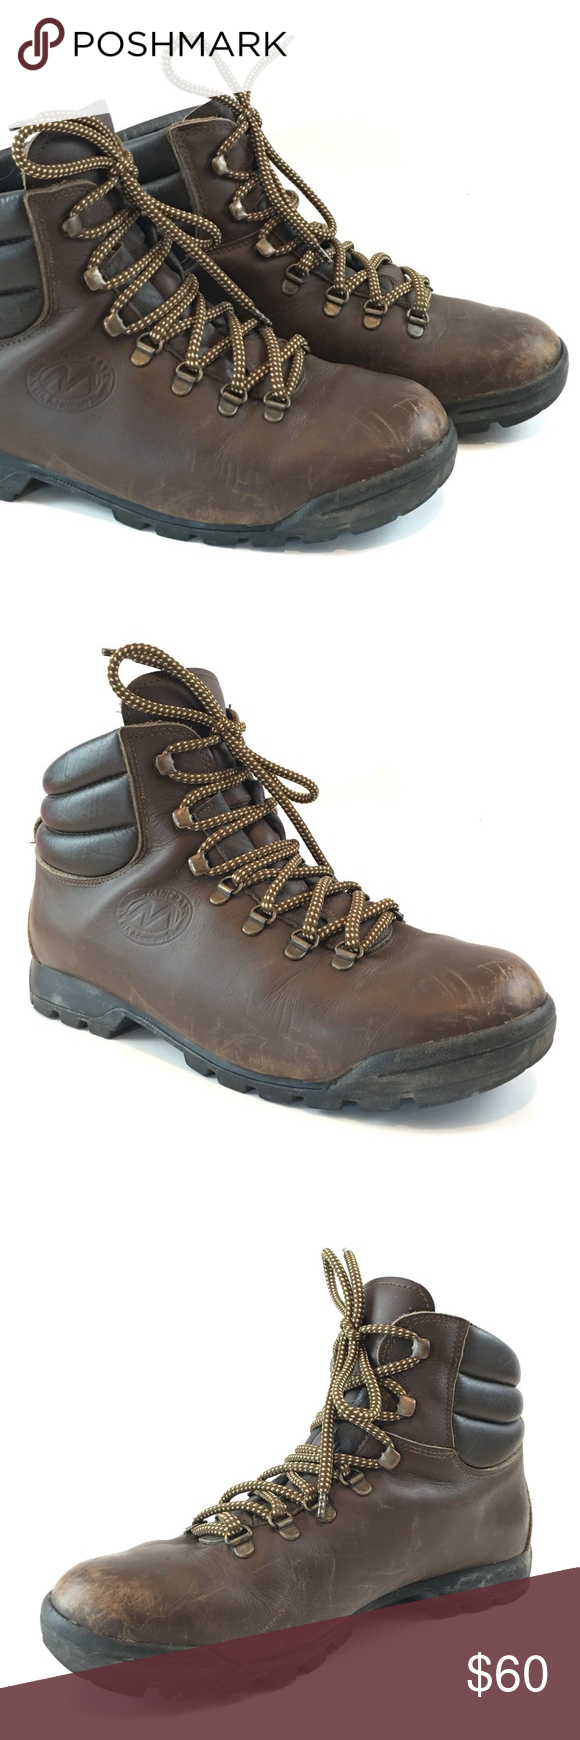 mens walking boots size 9